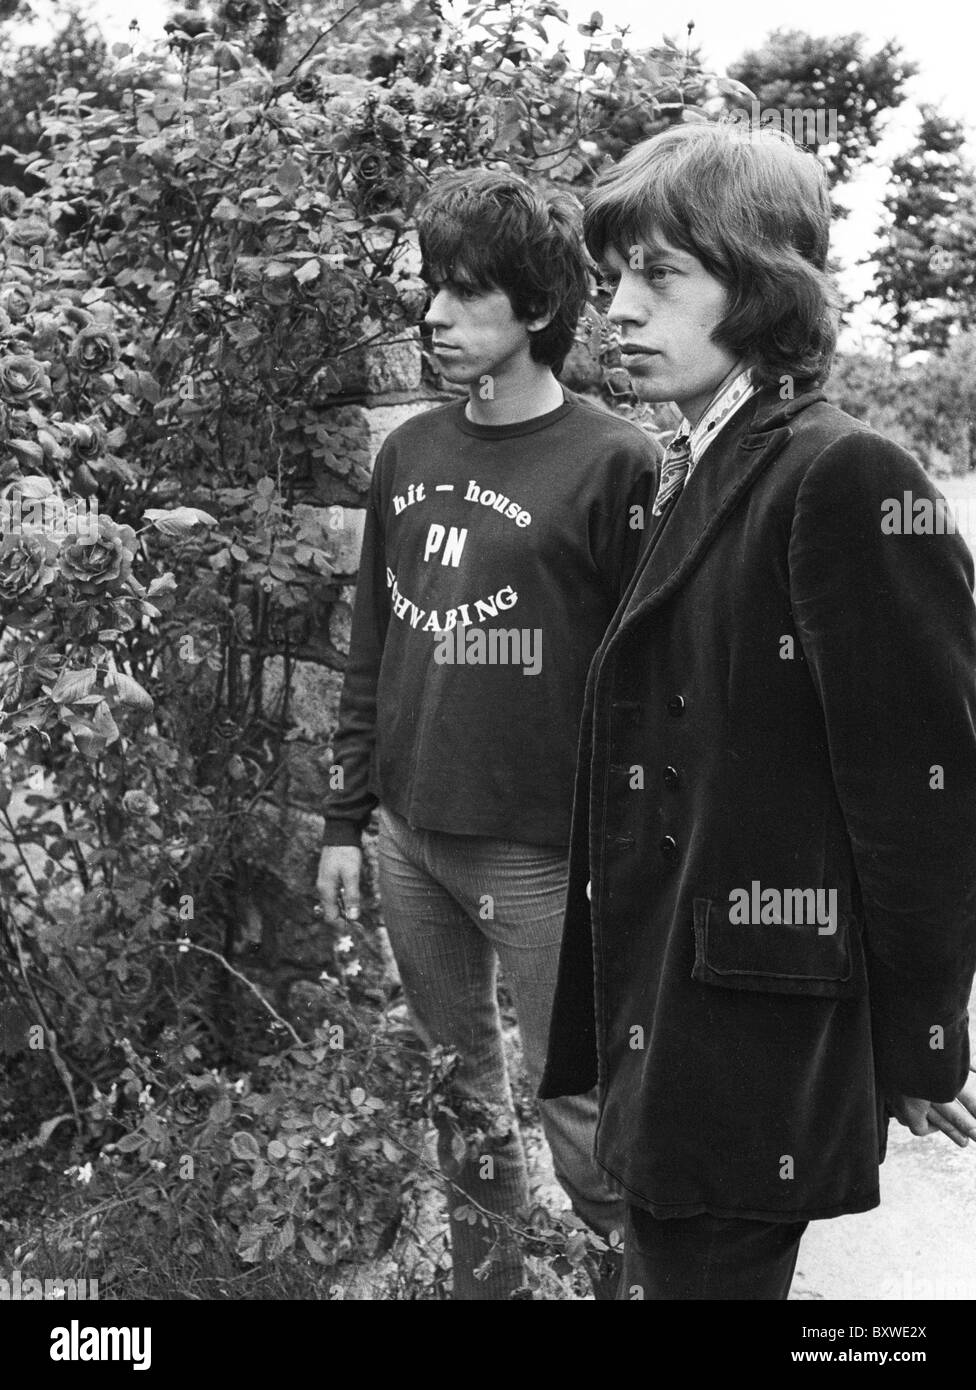 Keith Richards and Mick Jagger exclusive image from 1967 by David Cole in the gardens at Redlands, Richards' Sussex Stock Photo